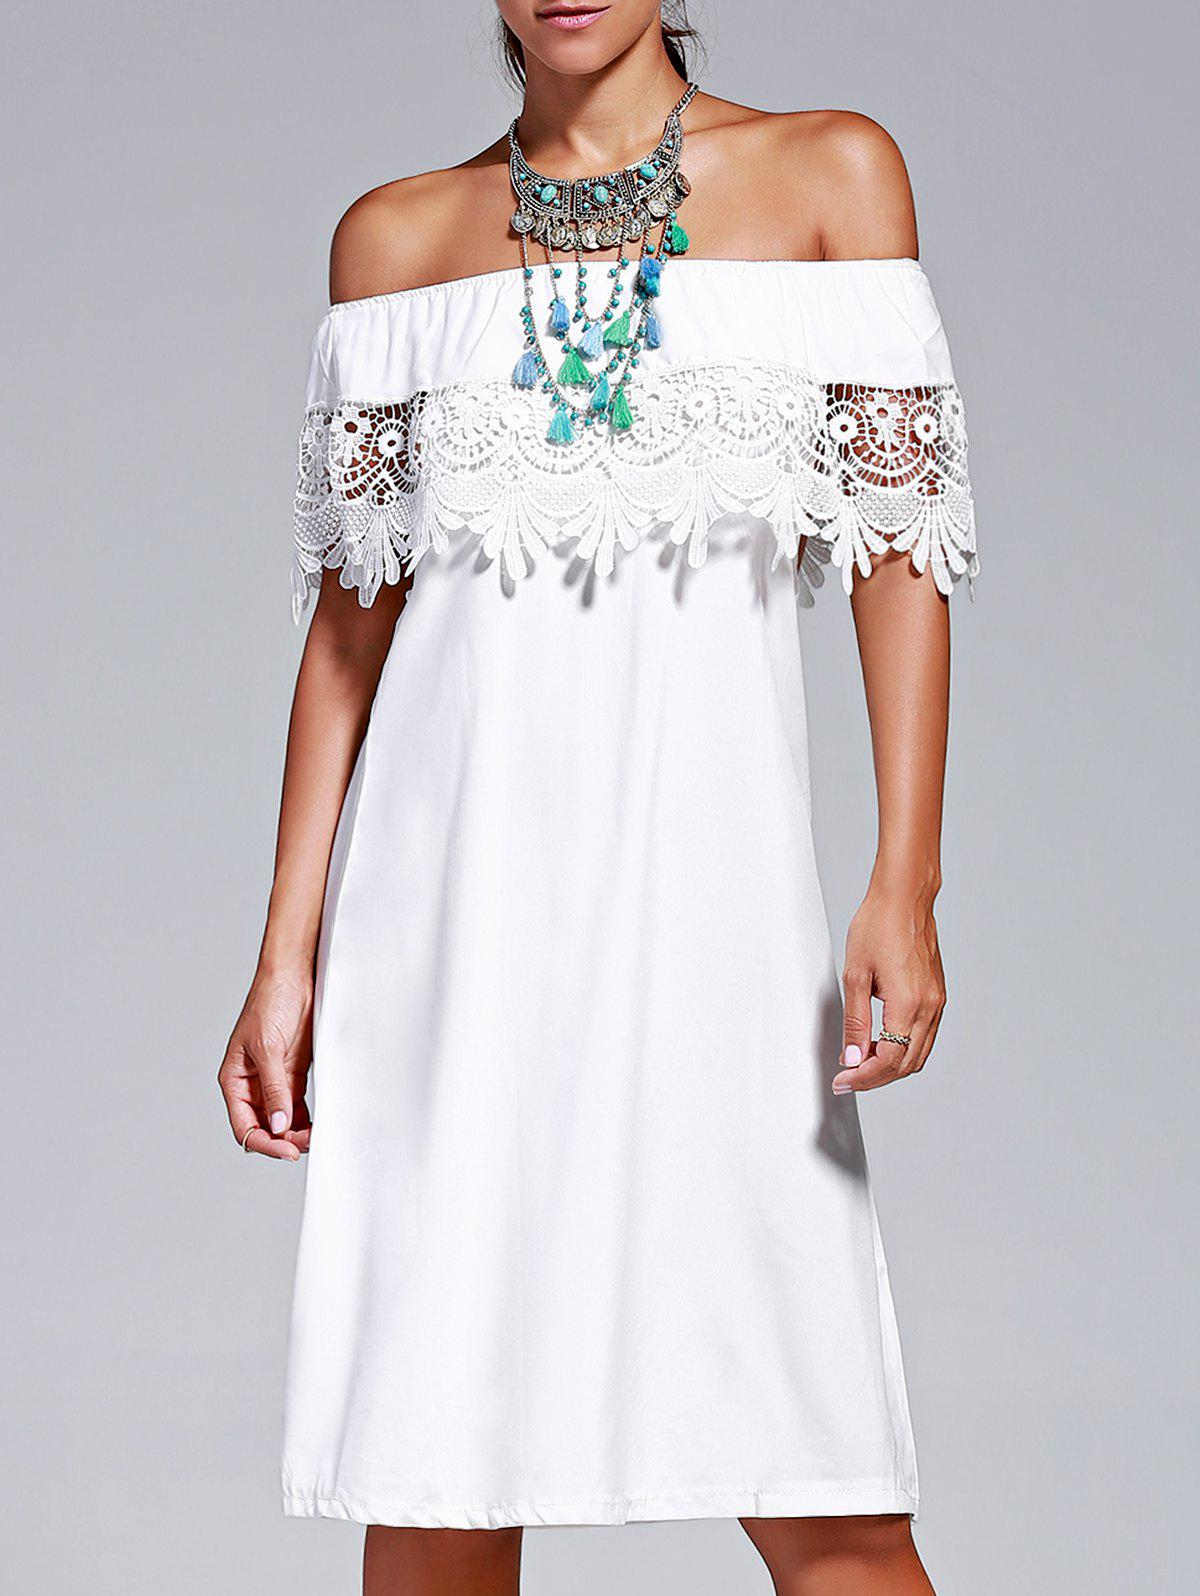 Sweet Lace Design Off The Shoulder Pure Color Dress For Women - WHITE XL